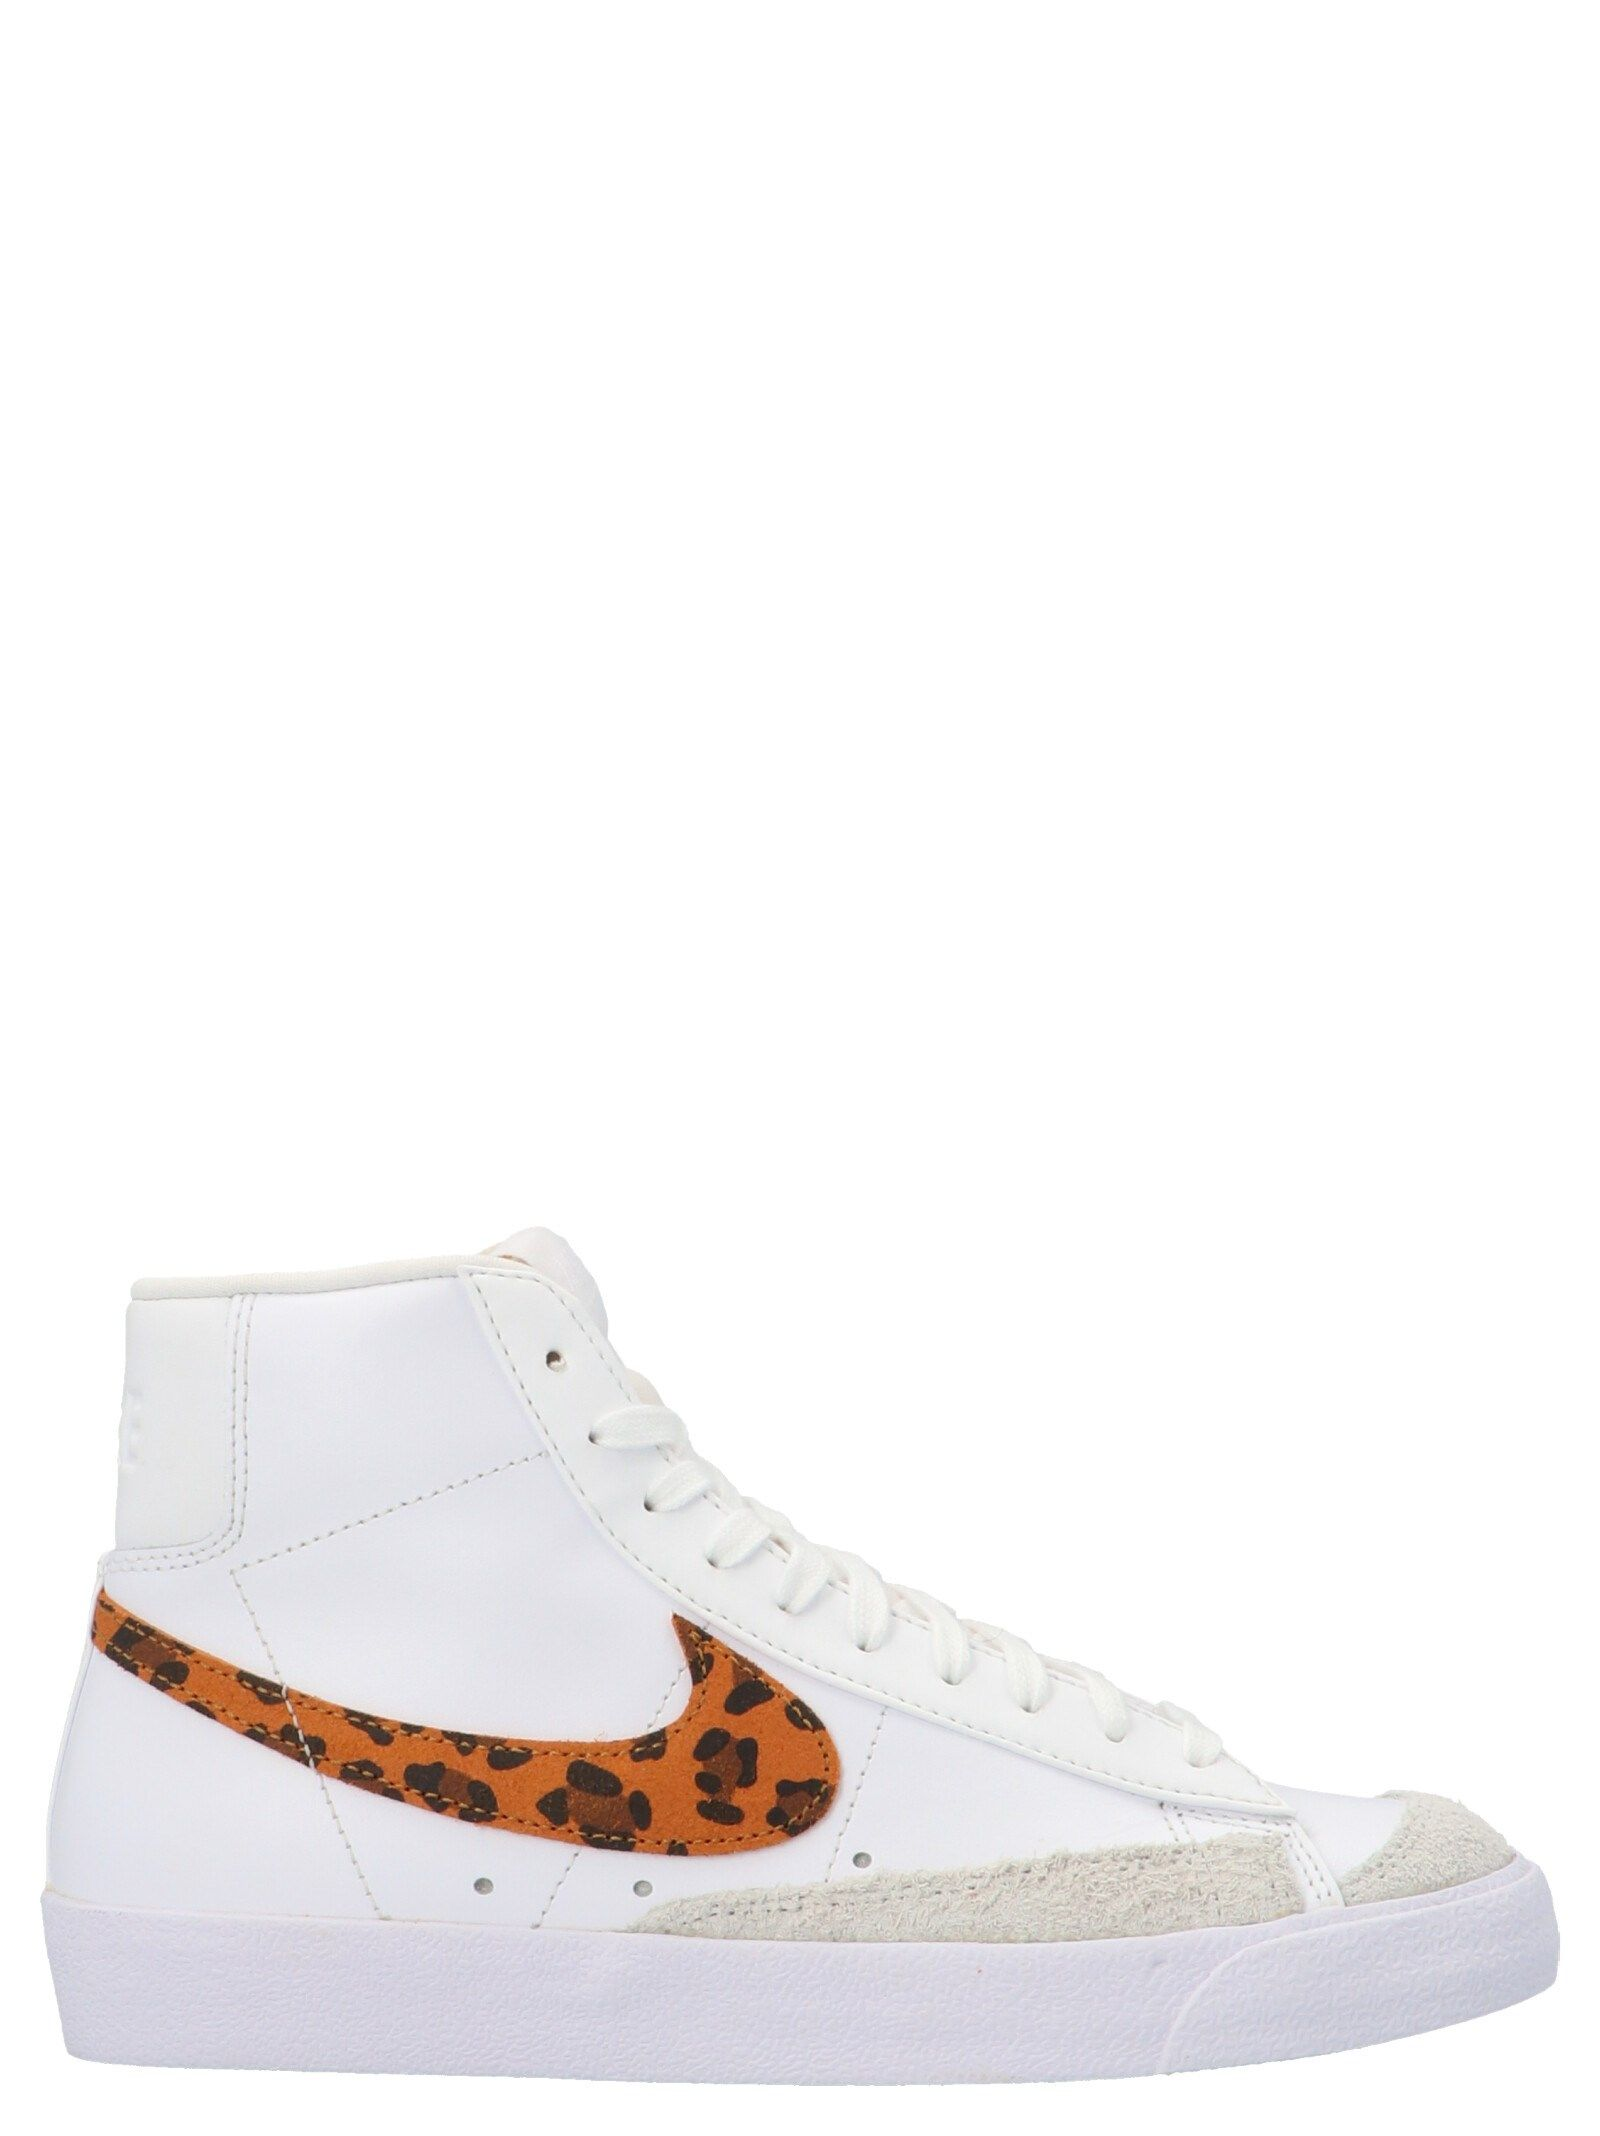 Nike NIKE WOMEN'S WHITE OTHER MATERIALS SNEAKERS